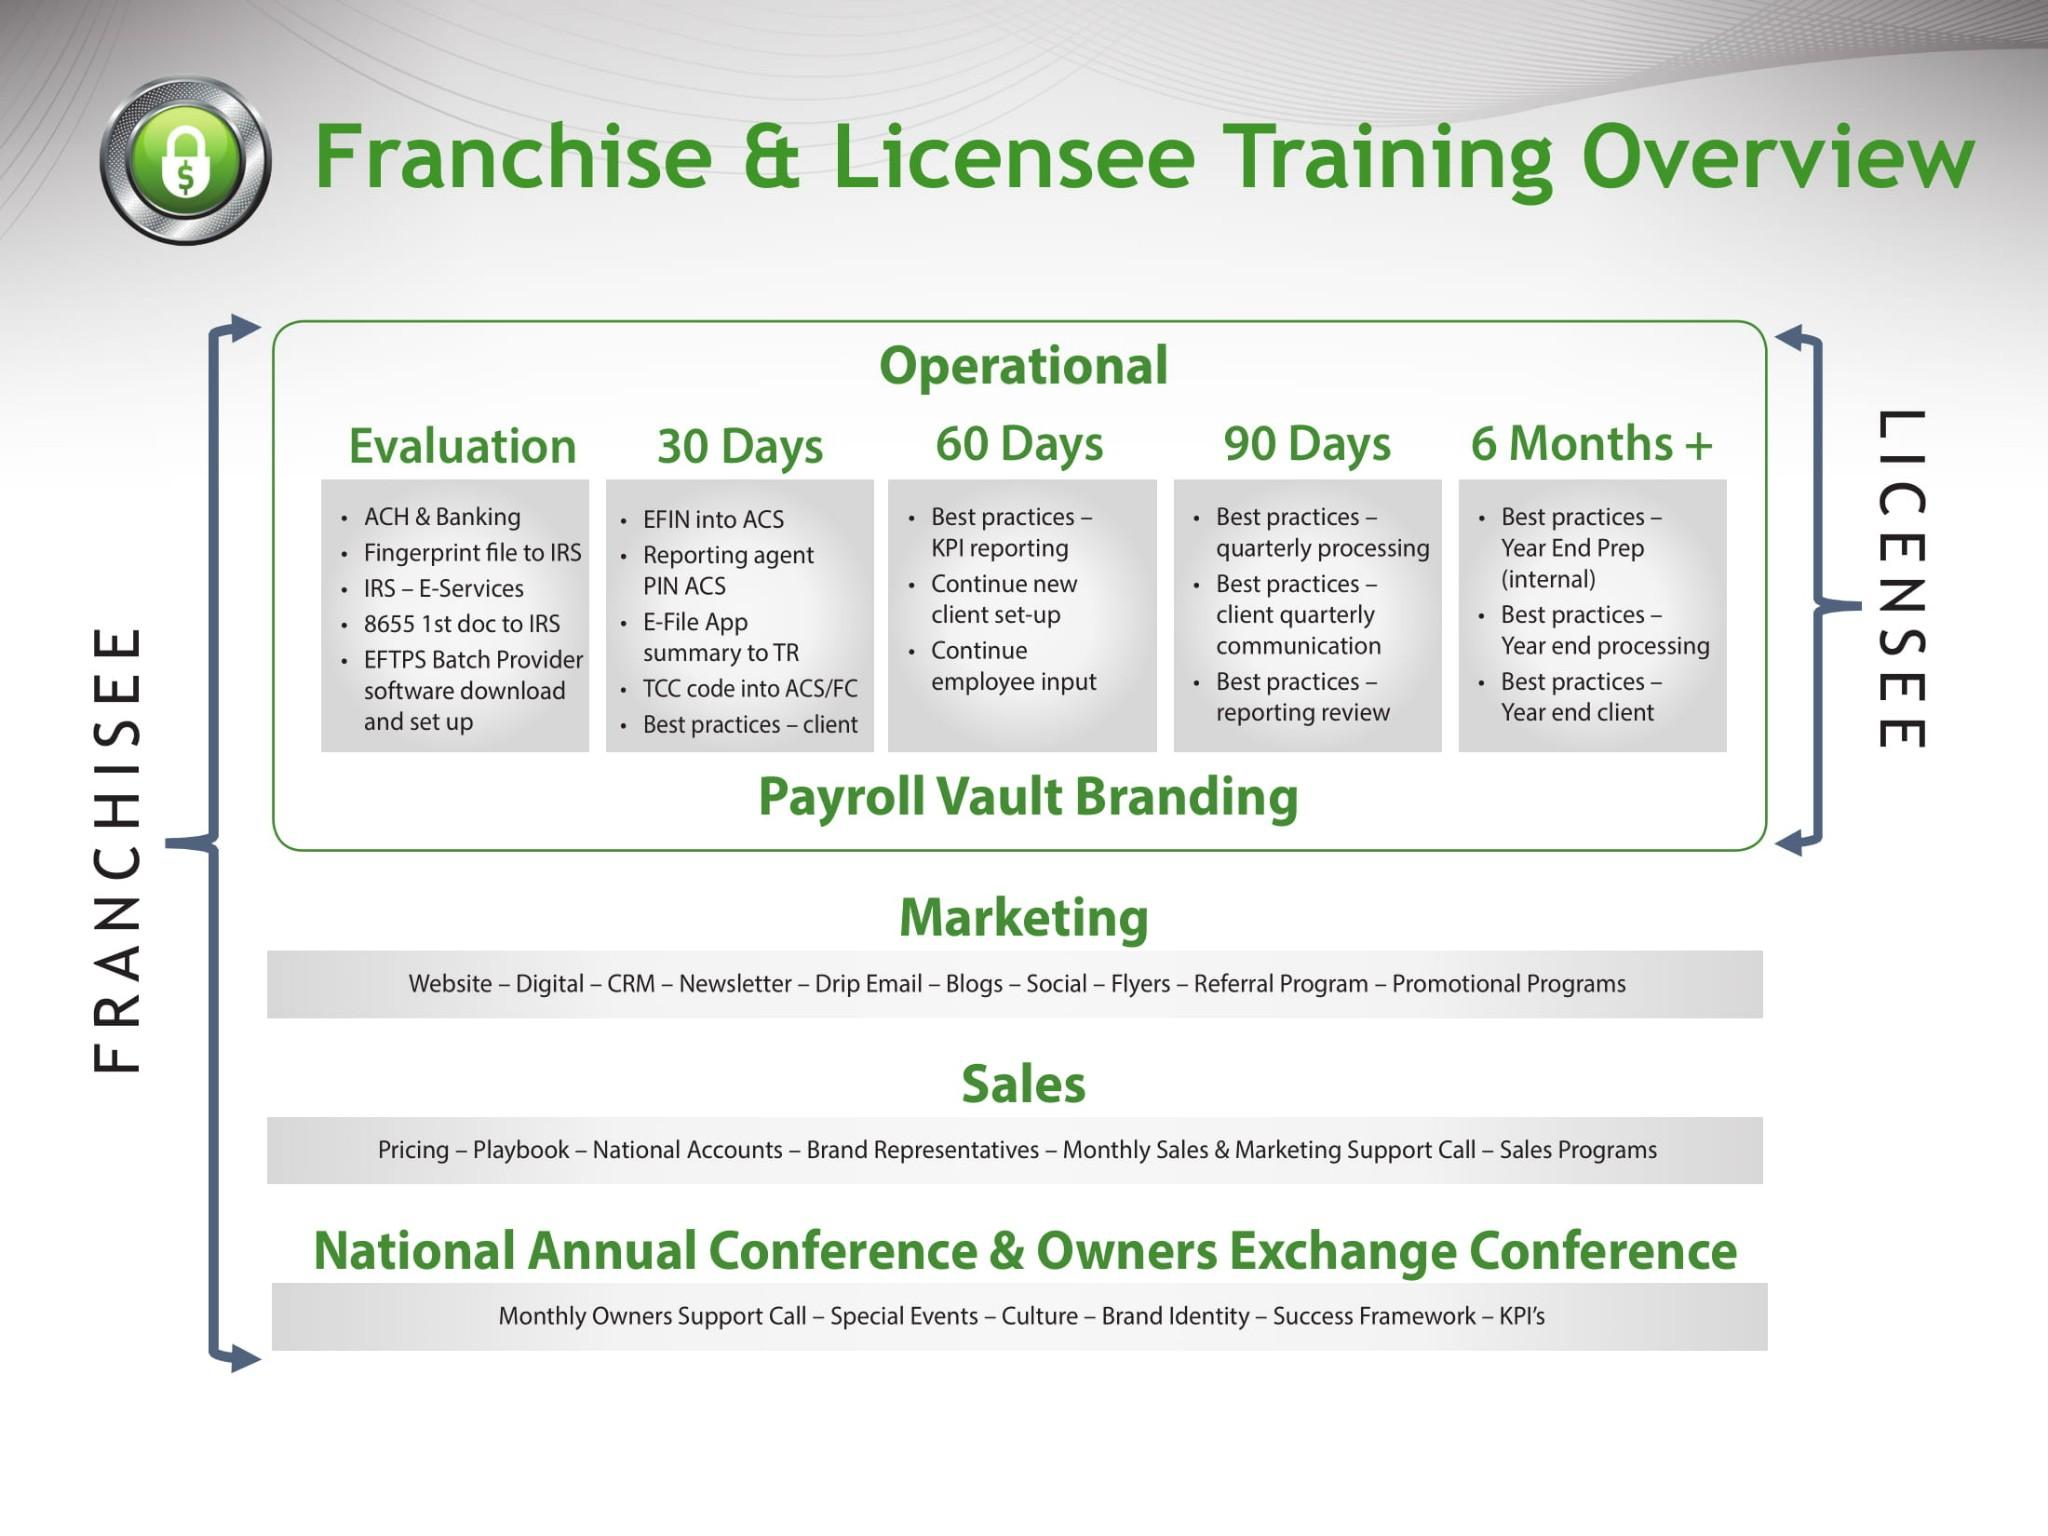 pv licensing training overview